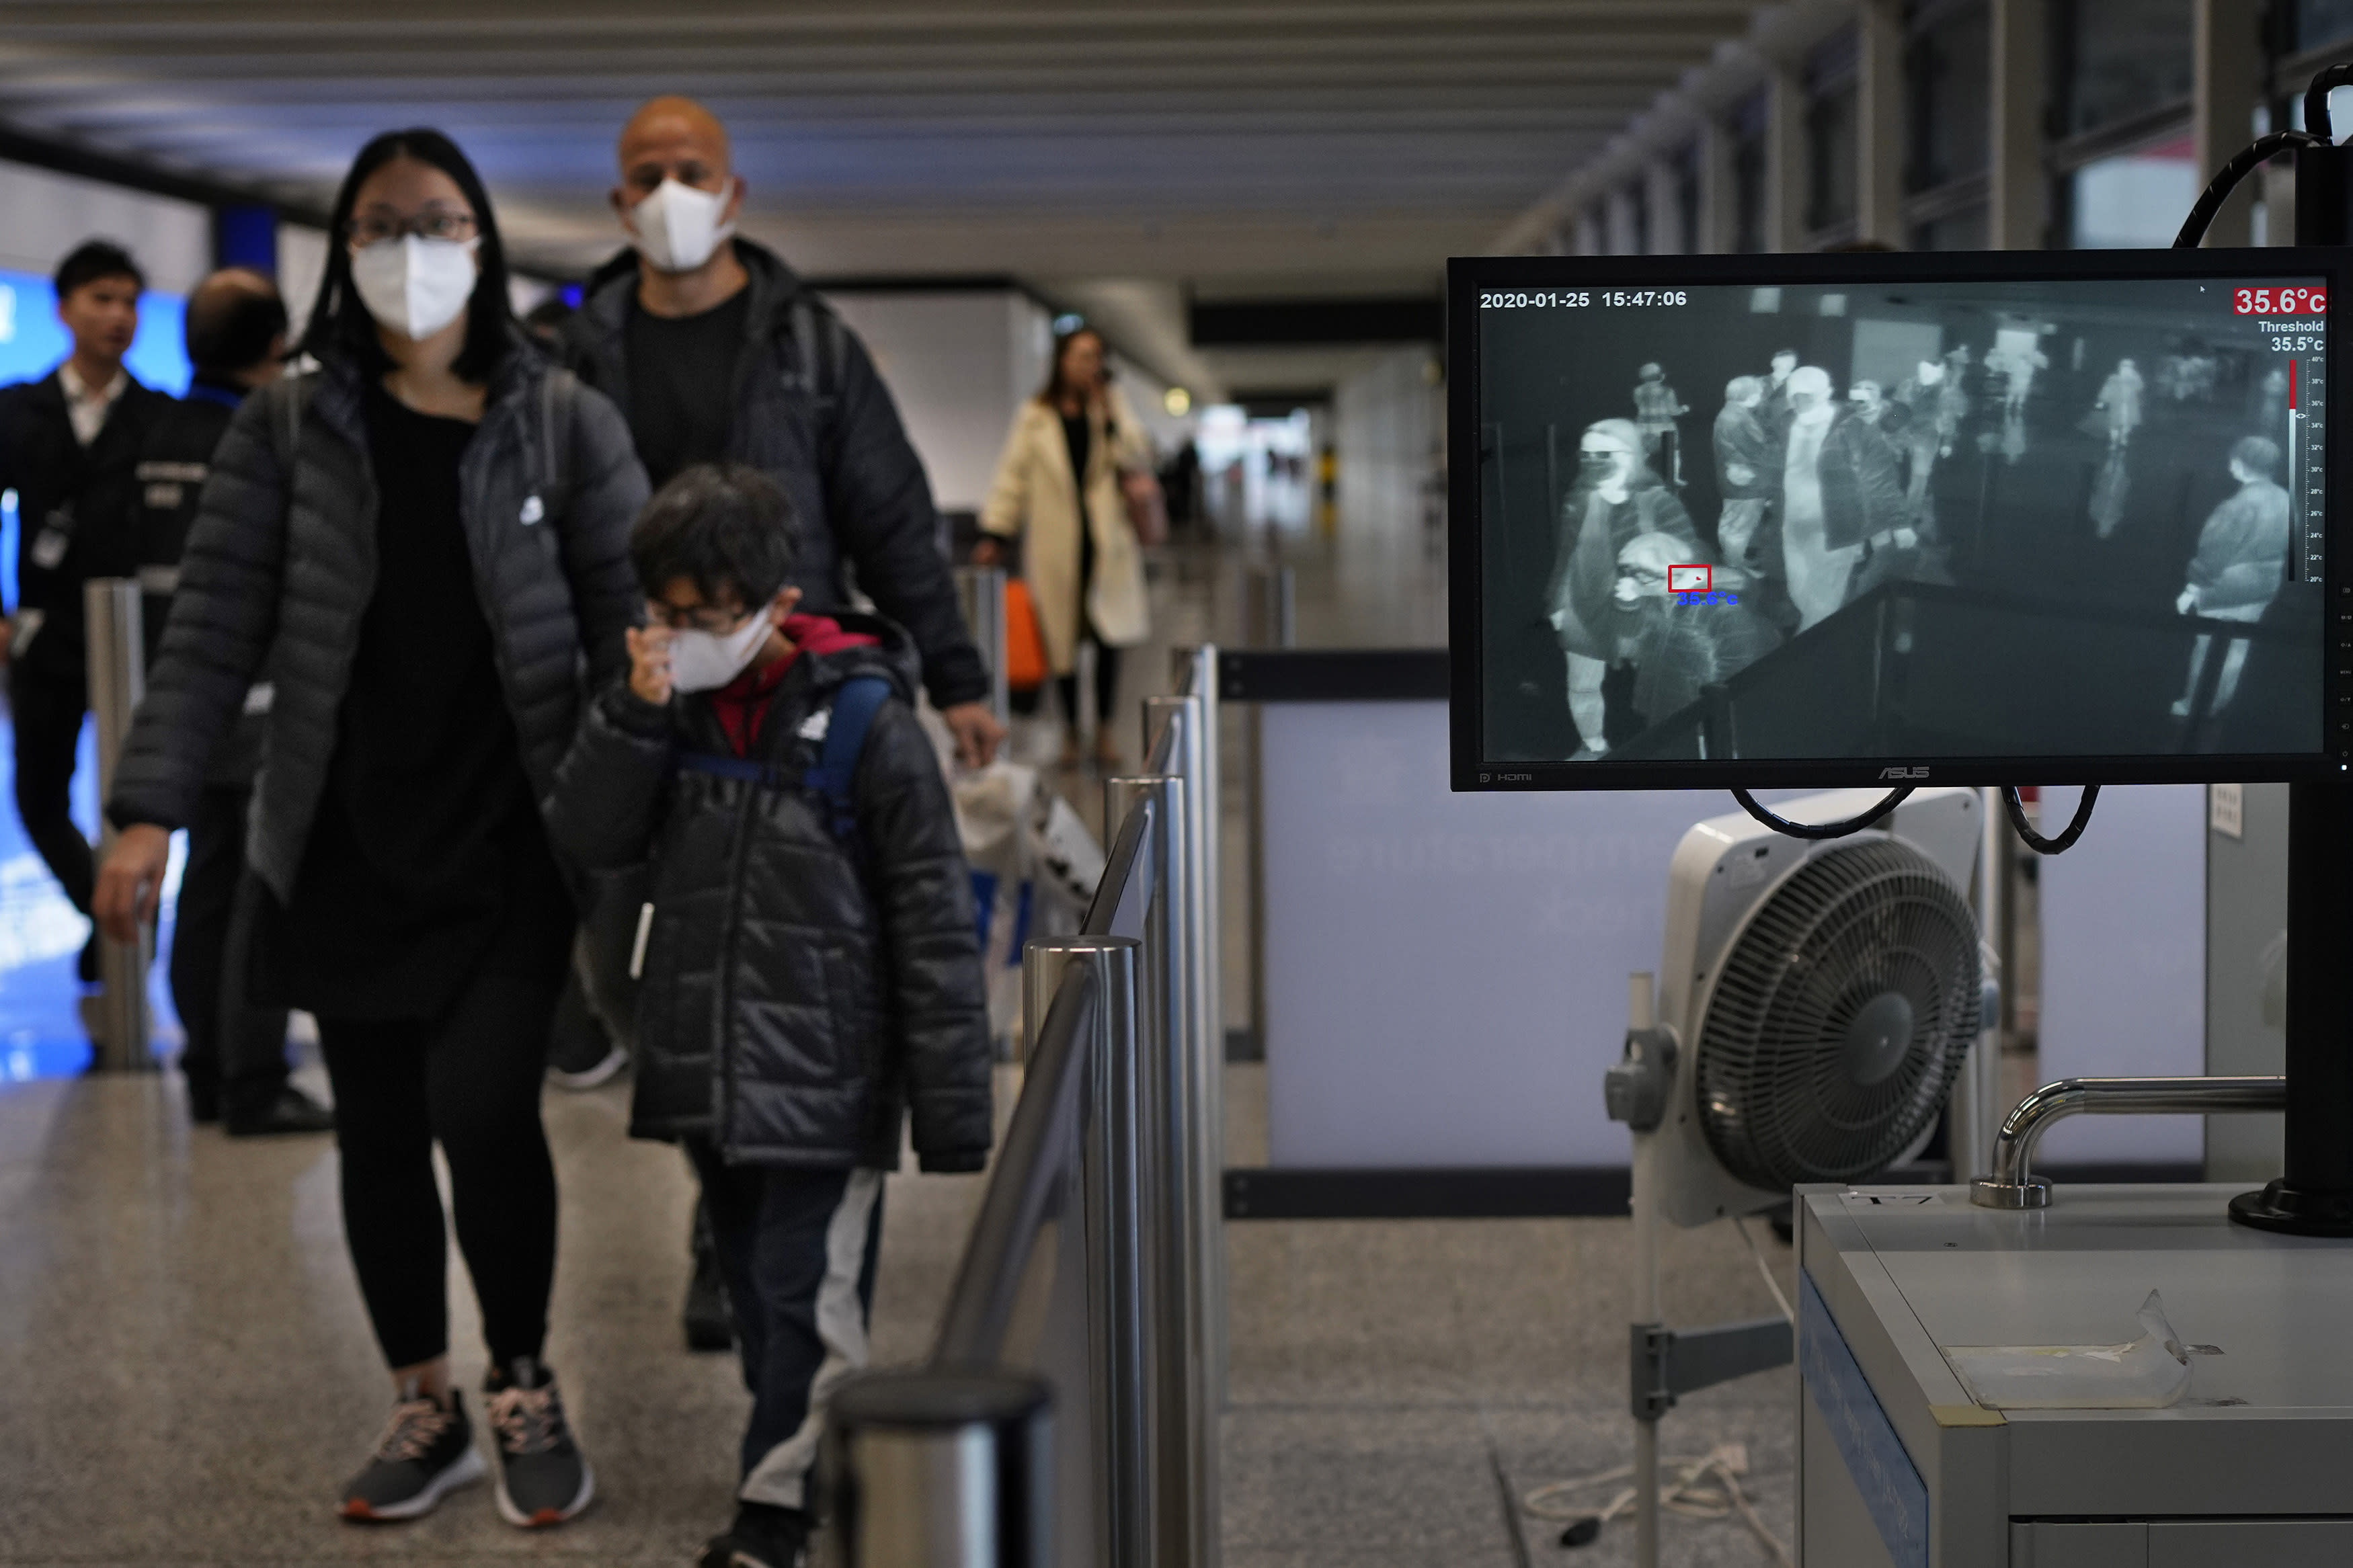 Health surveillance officer use temperature scanner to monitor passengers arriving at Hong Kong International Airport in Hong Kong Saturday, Jan. 25, 2020. Hong Kong has declared the outbreak of a new virus an emergency and will close primary and secondary schools for two more weeks after the Lunar New Year holiday. City leader Carrie Lam also announced Saturday that trains and flights from the city of Wuhan would be blocked. (AP Photo/Vincent Yu)